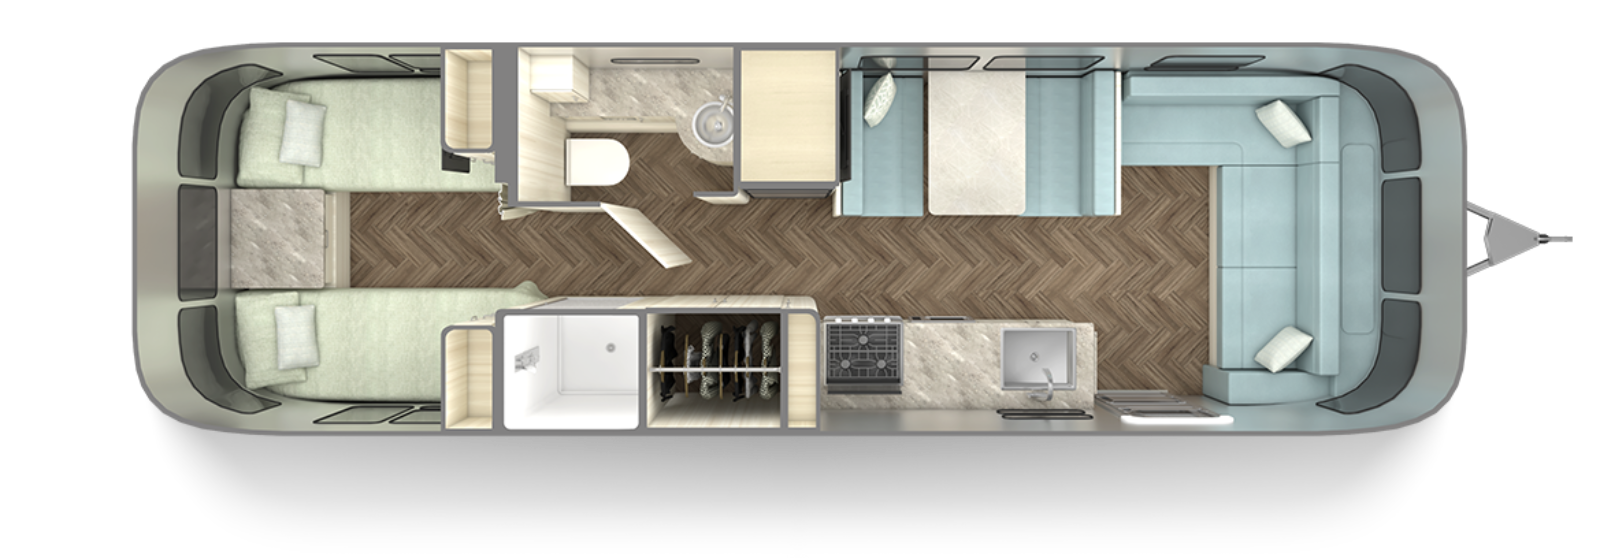 2021-Airstream-International-30RB-floor-plan-twin-aqua